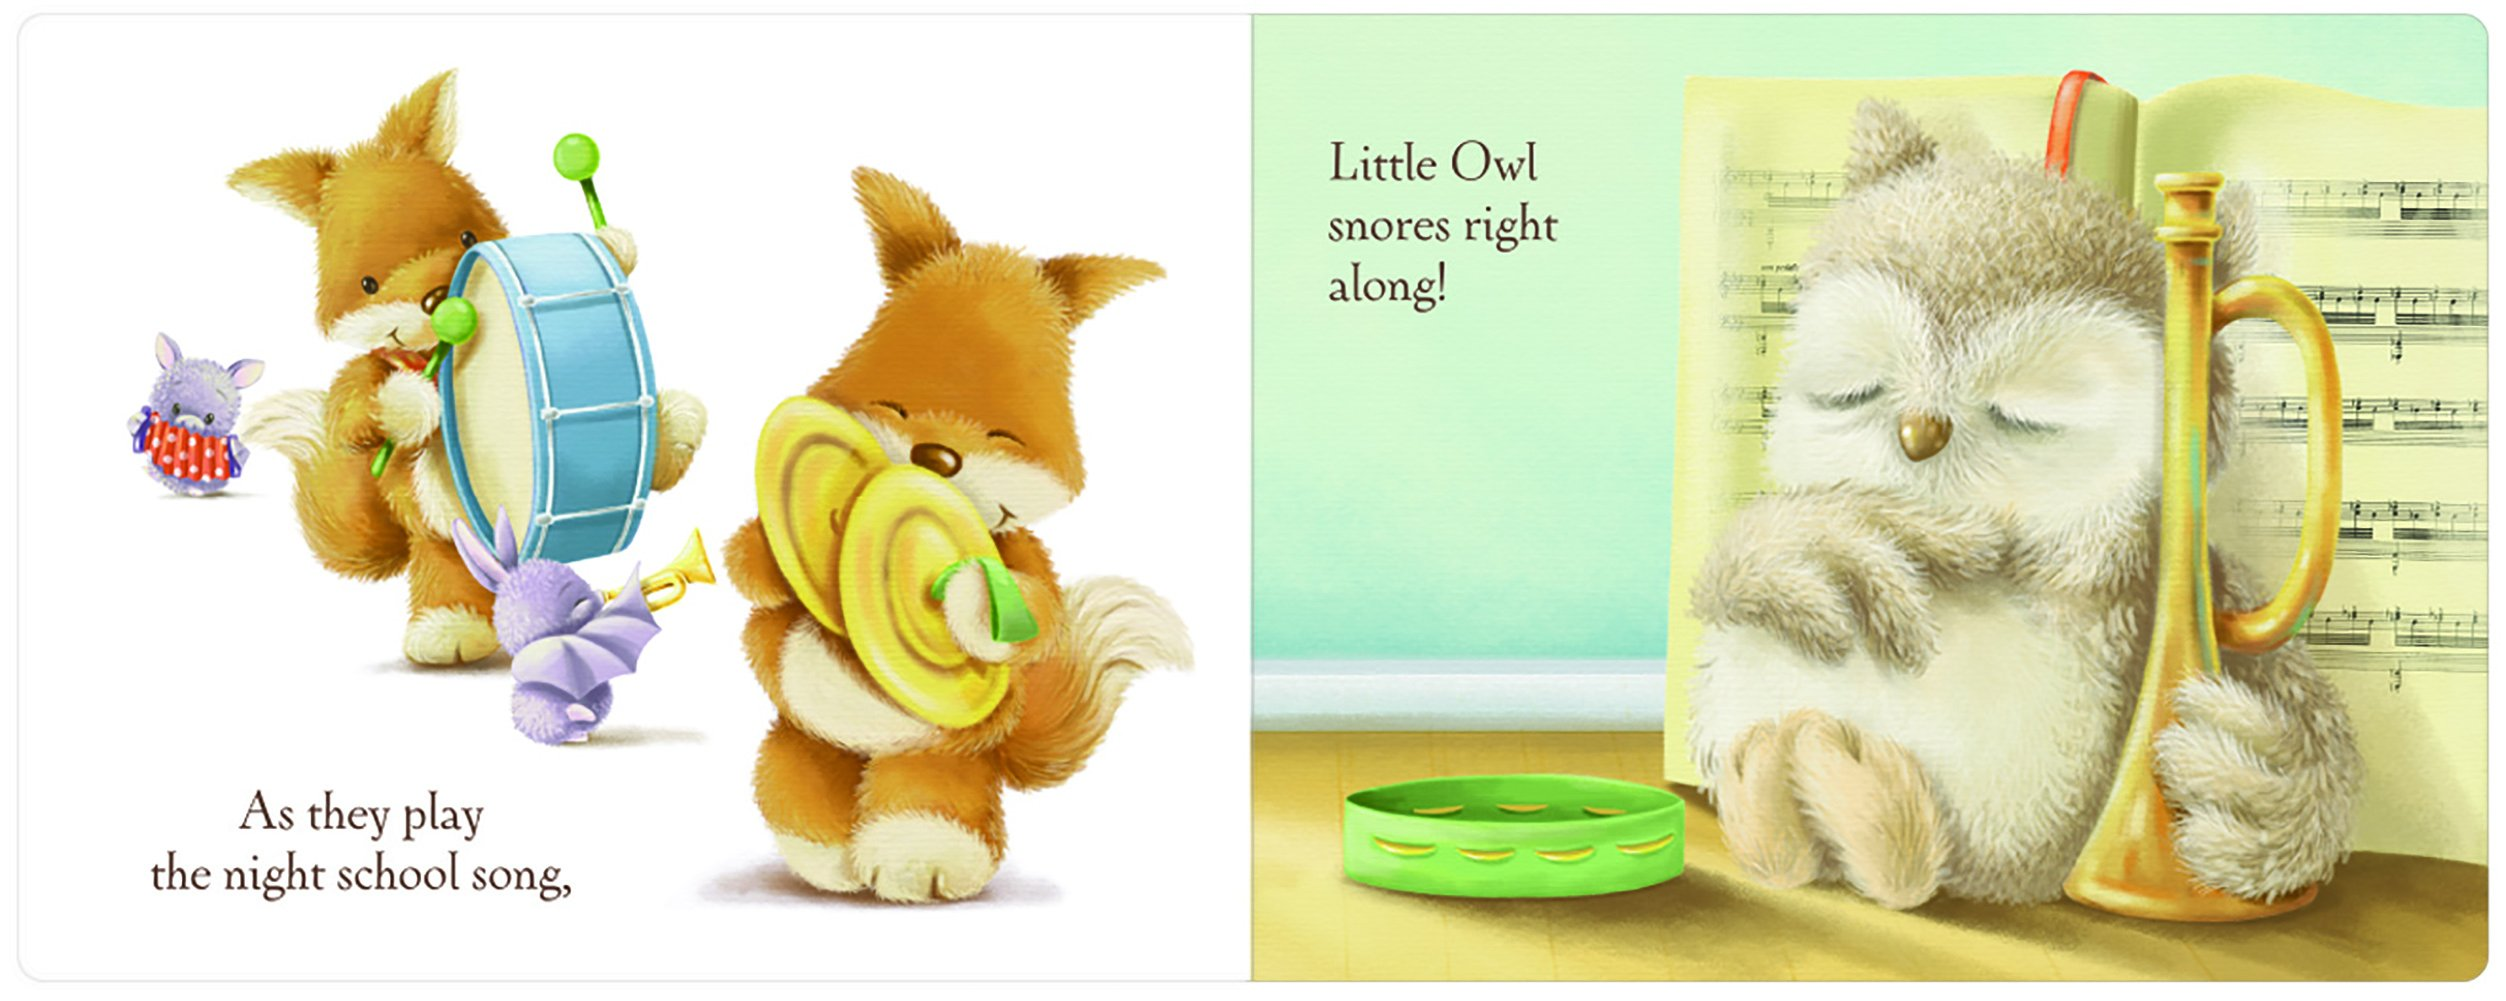 Jellycat Wake Up Little Owl Board Book and Little Owl Toy by Jellycat (Image #3)